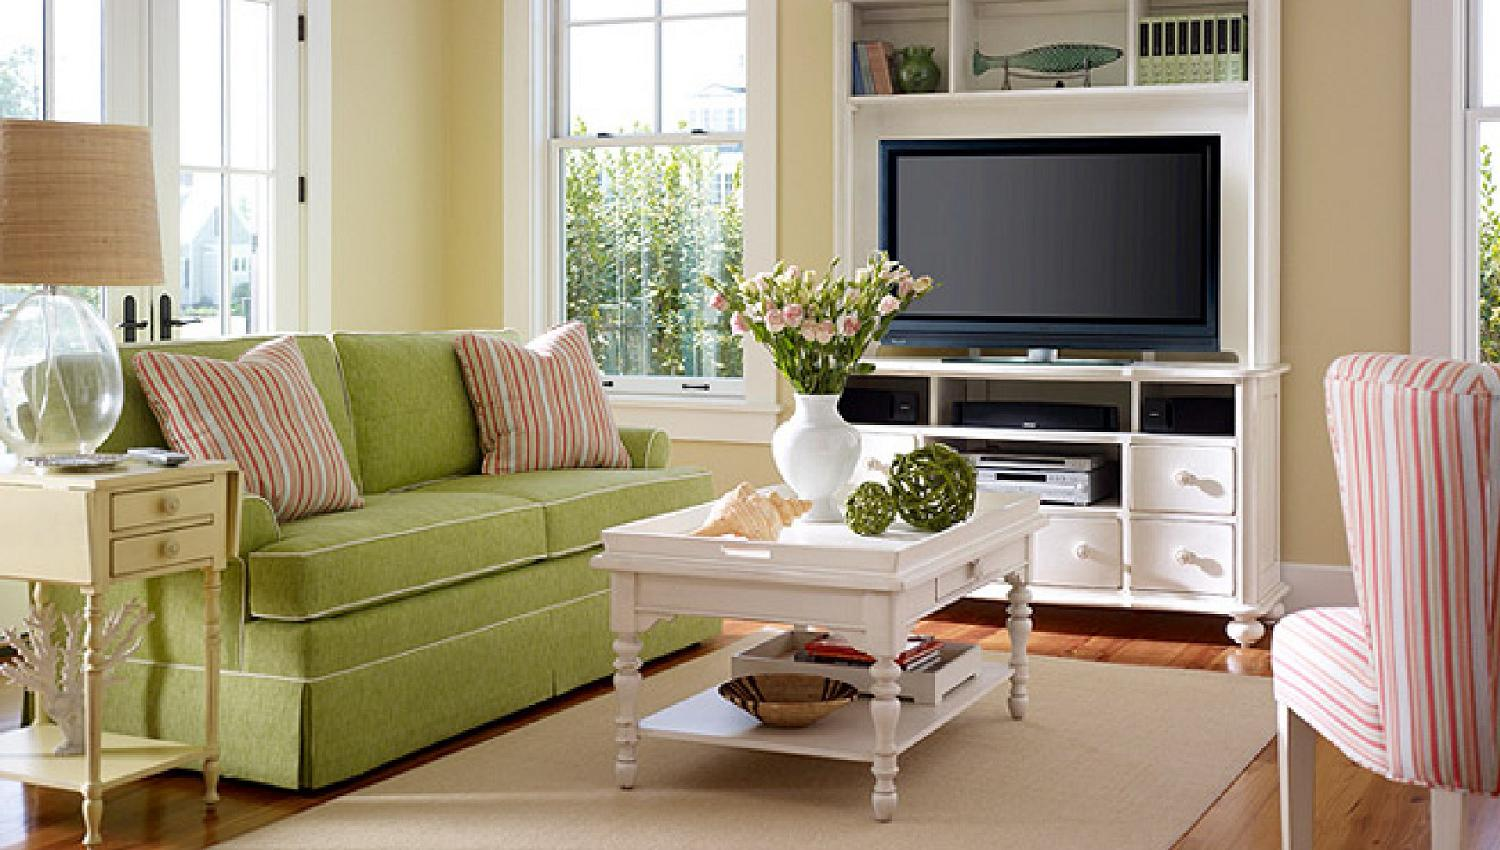 Tips for choosing living room furniture homeadvisor for Furniture design for small living room